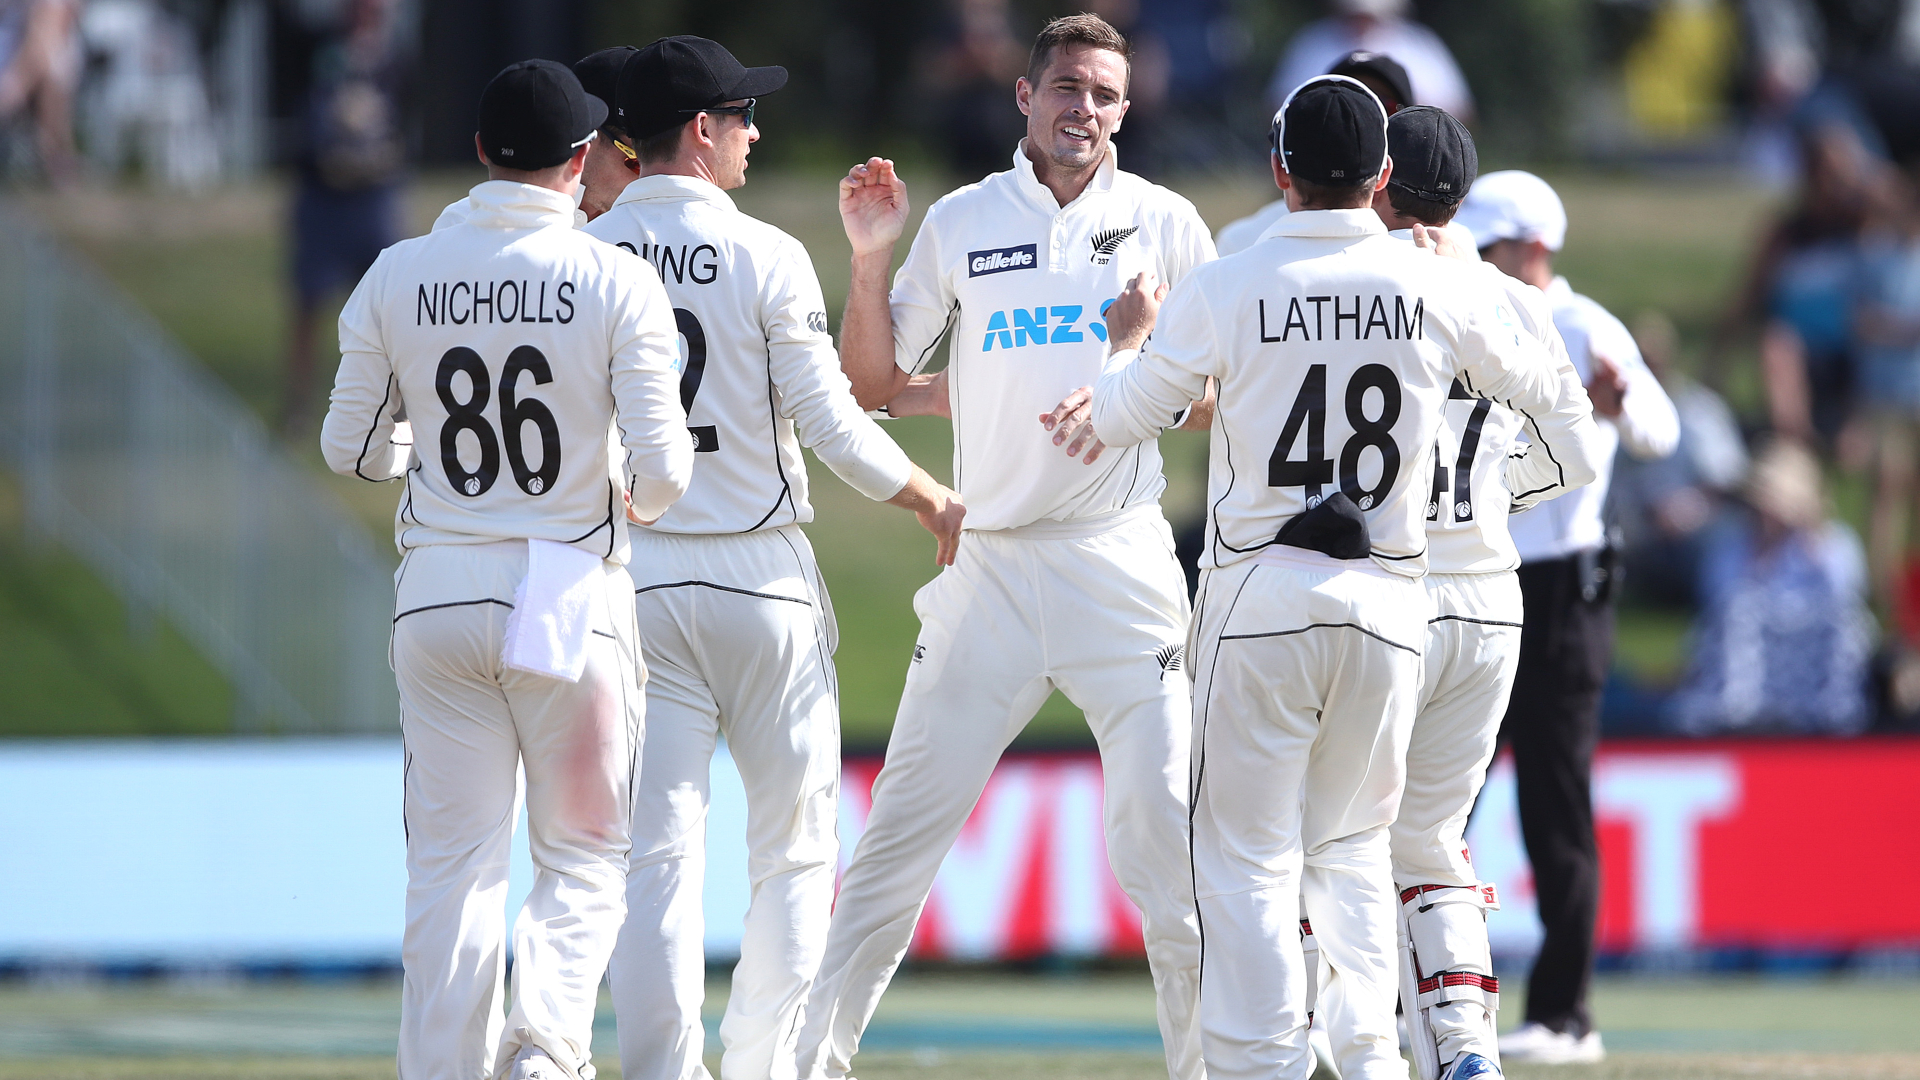 Southee takes 300th Test wicket as New Zealand close in on victory against Pakistan